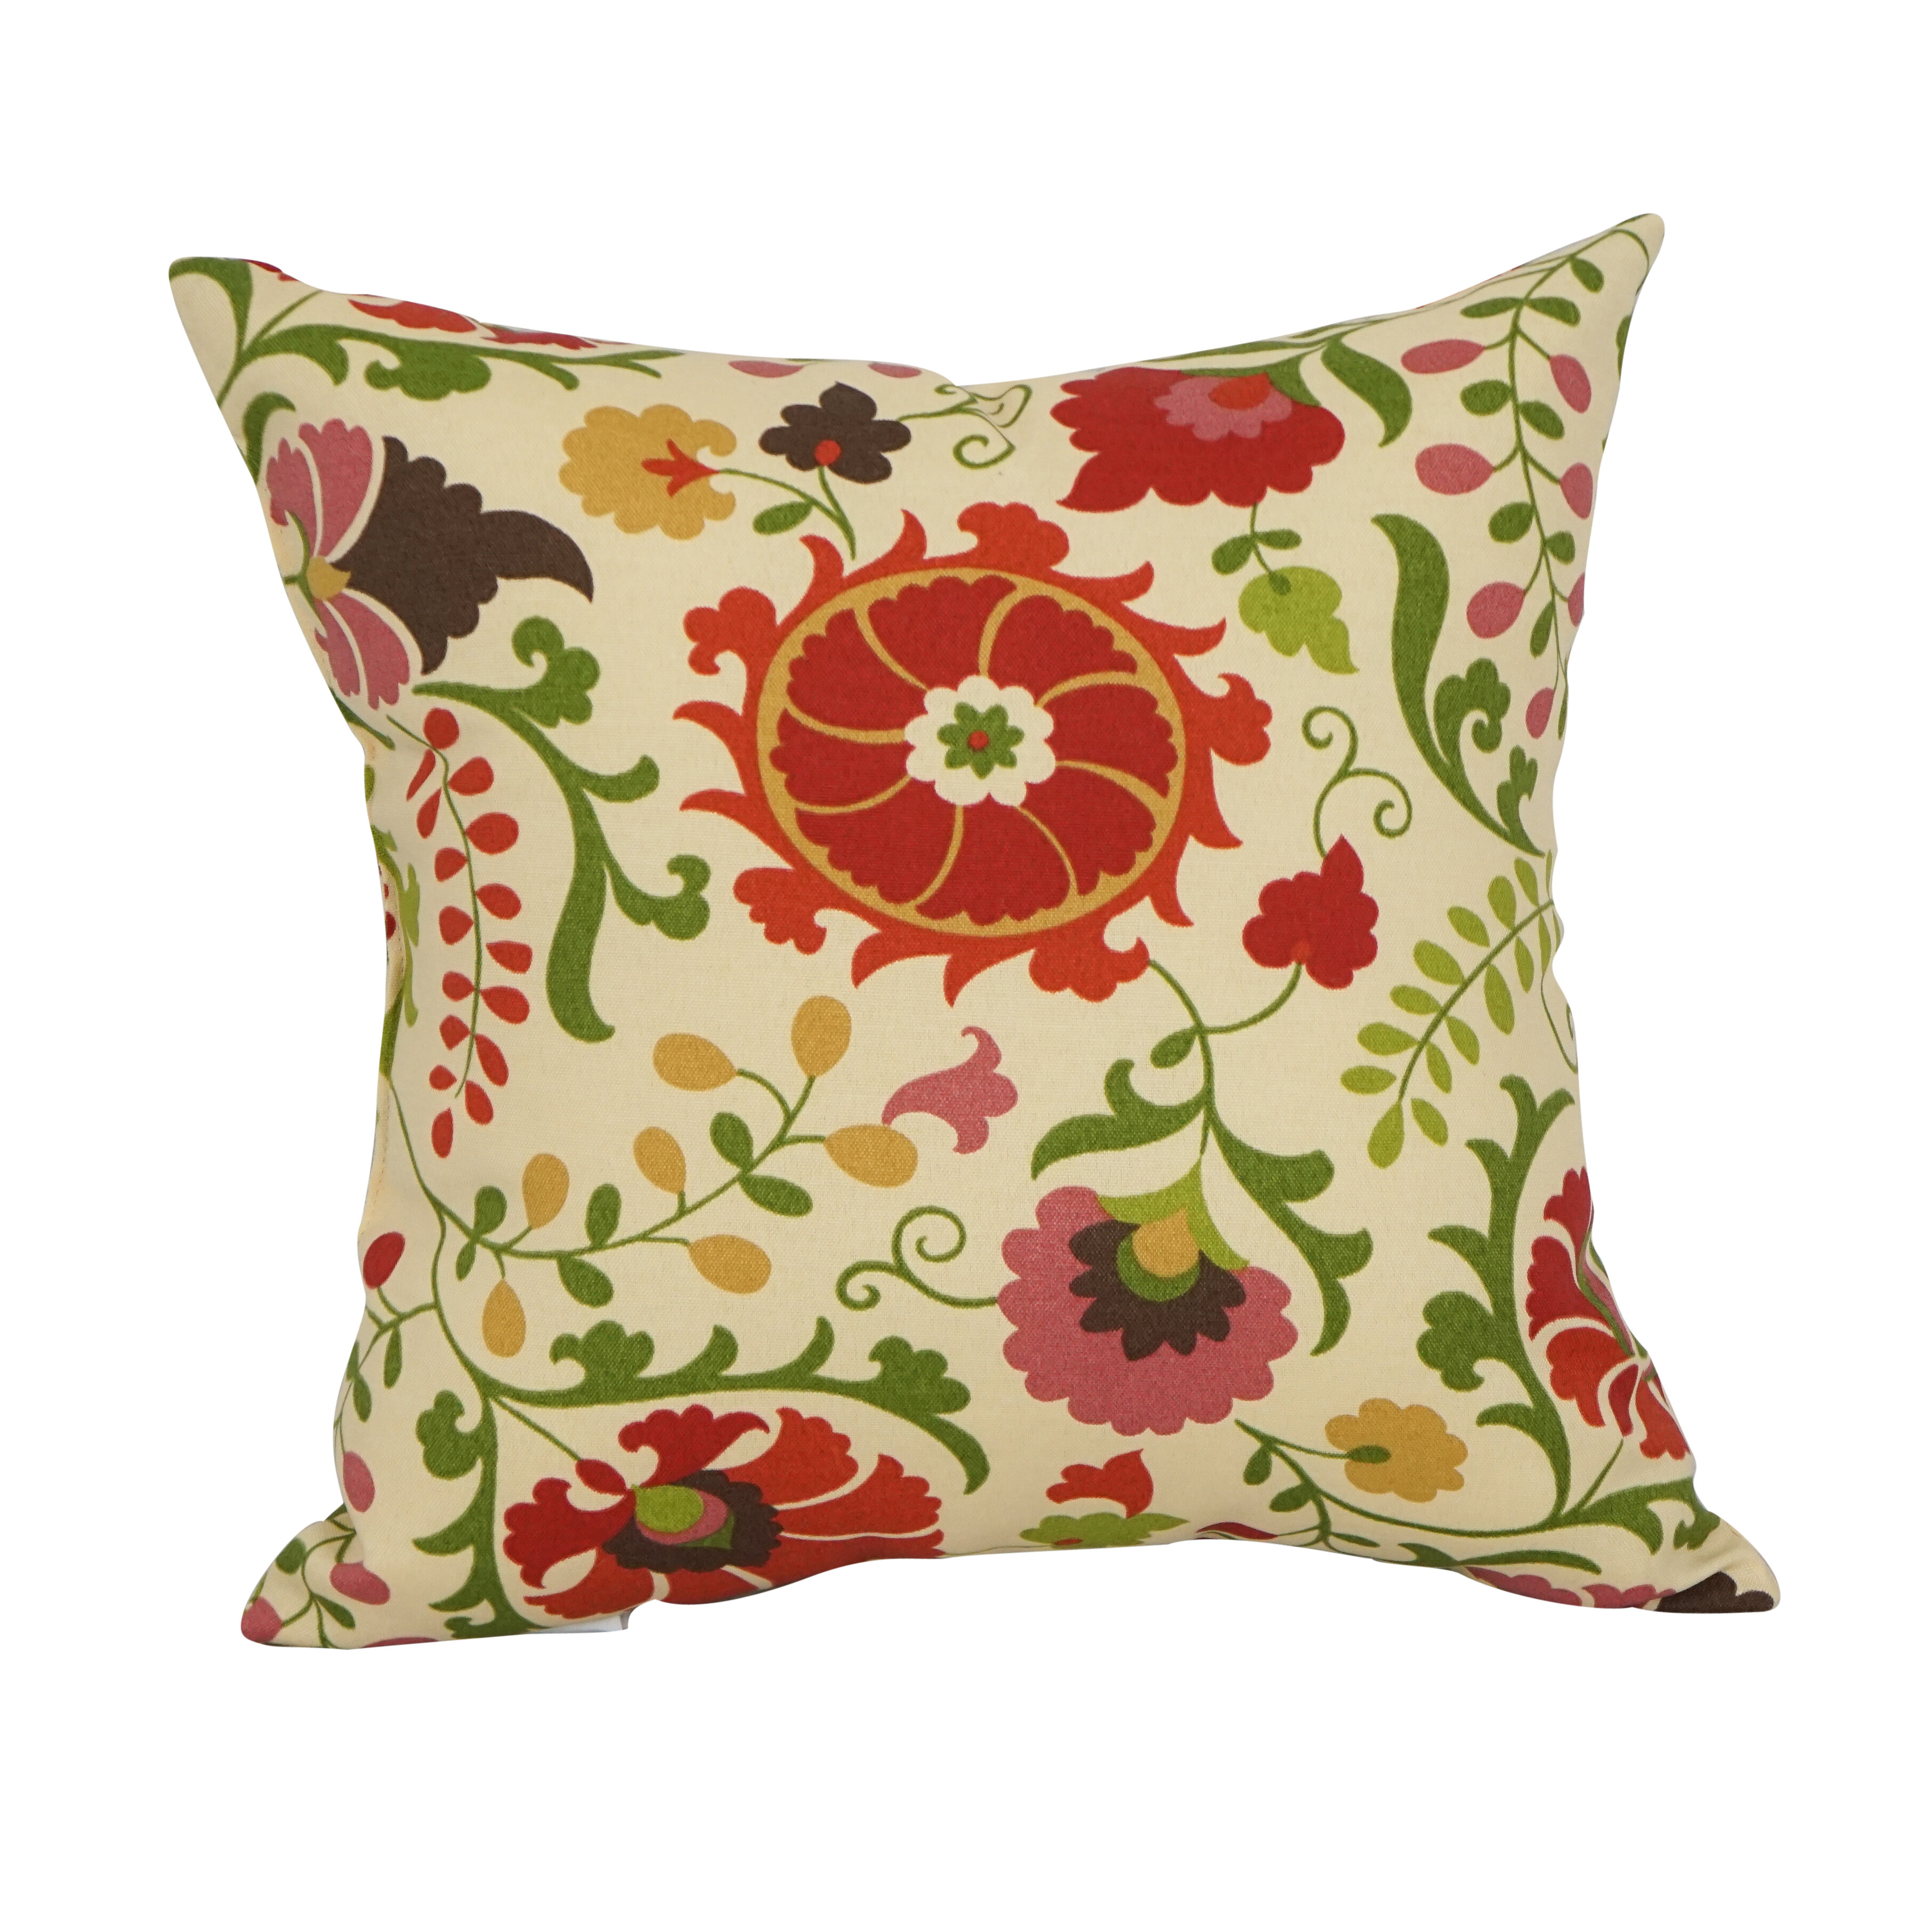 Floral Canora Grey Throw Pillows You Ll Love In 2021 Wayfair